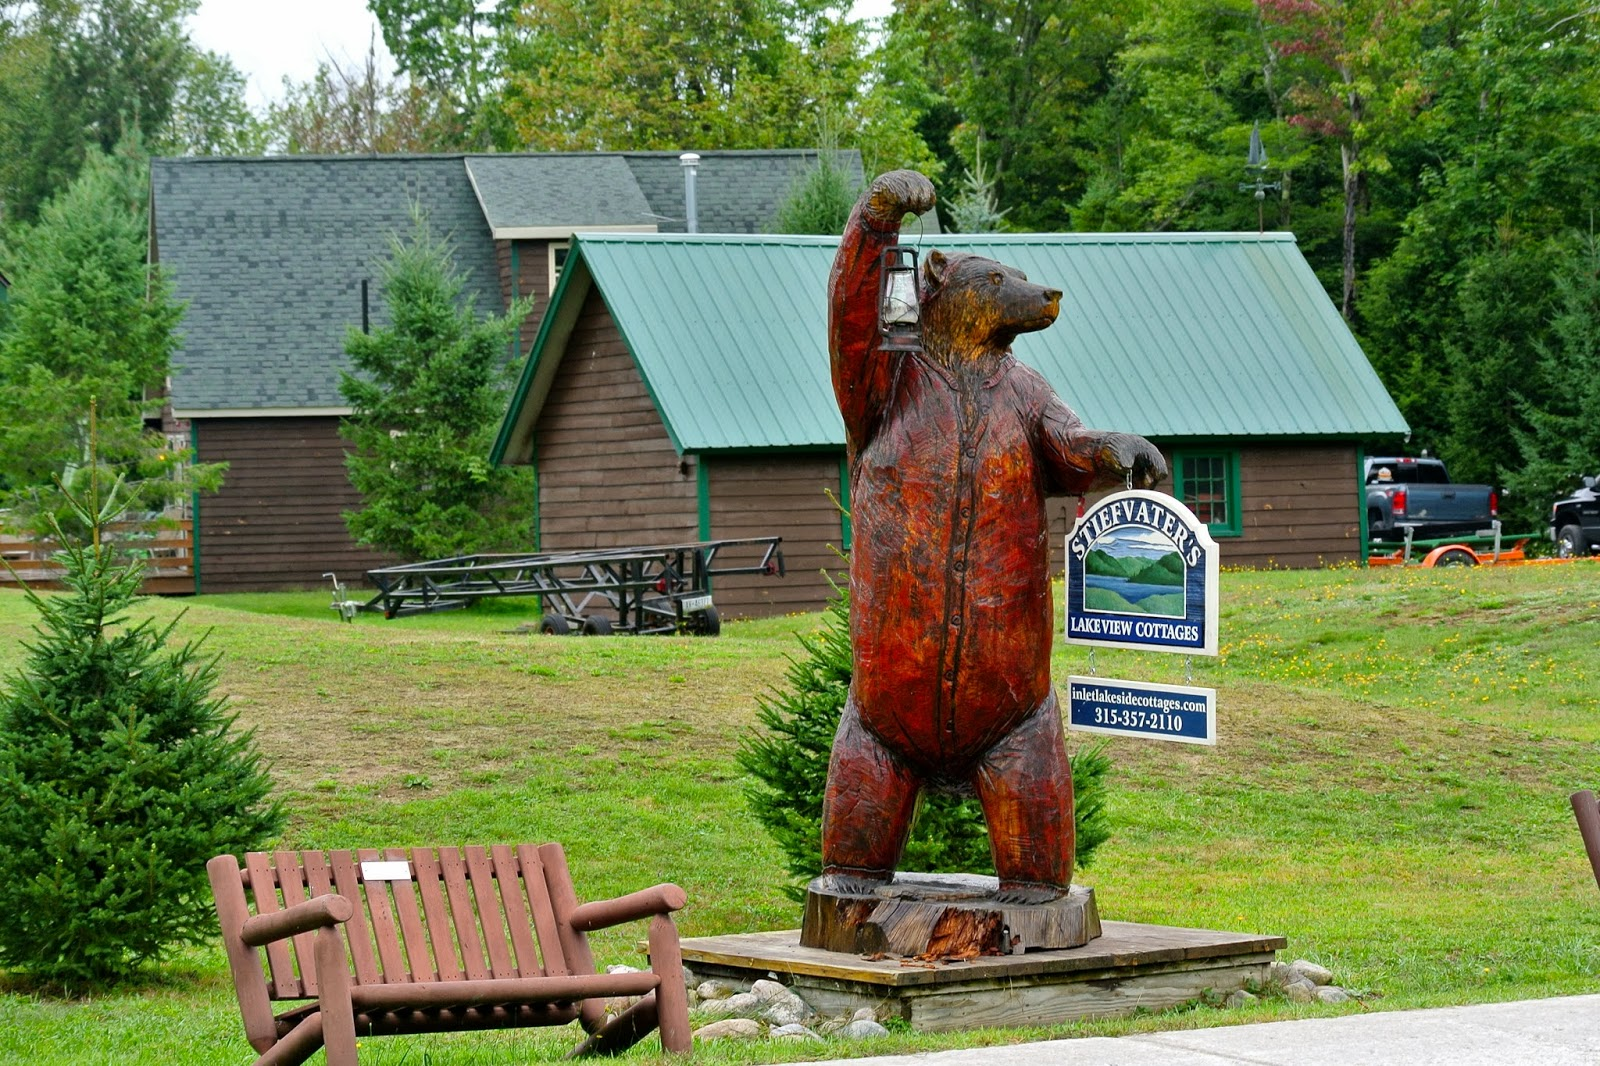 Steifvater's Lakeside Cottages Bear